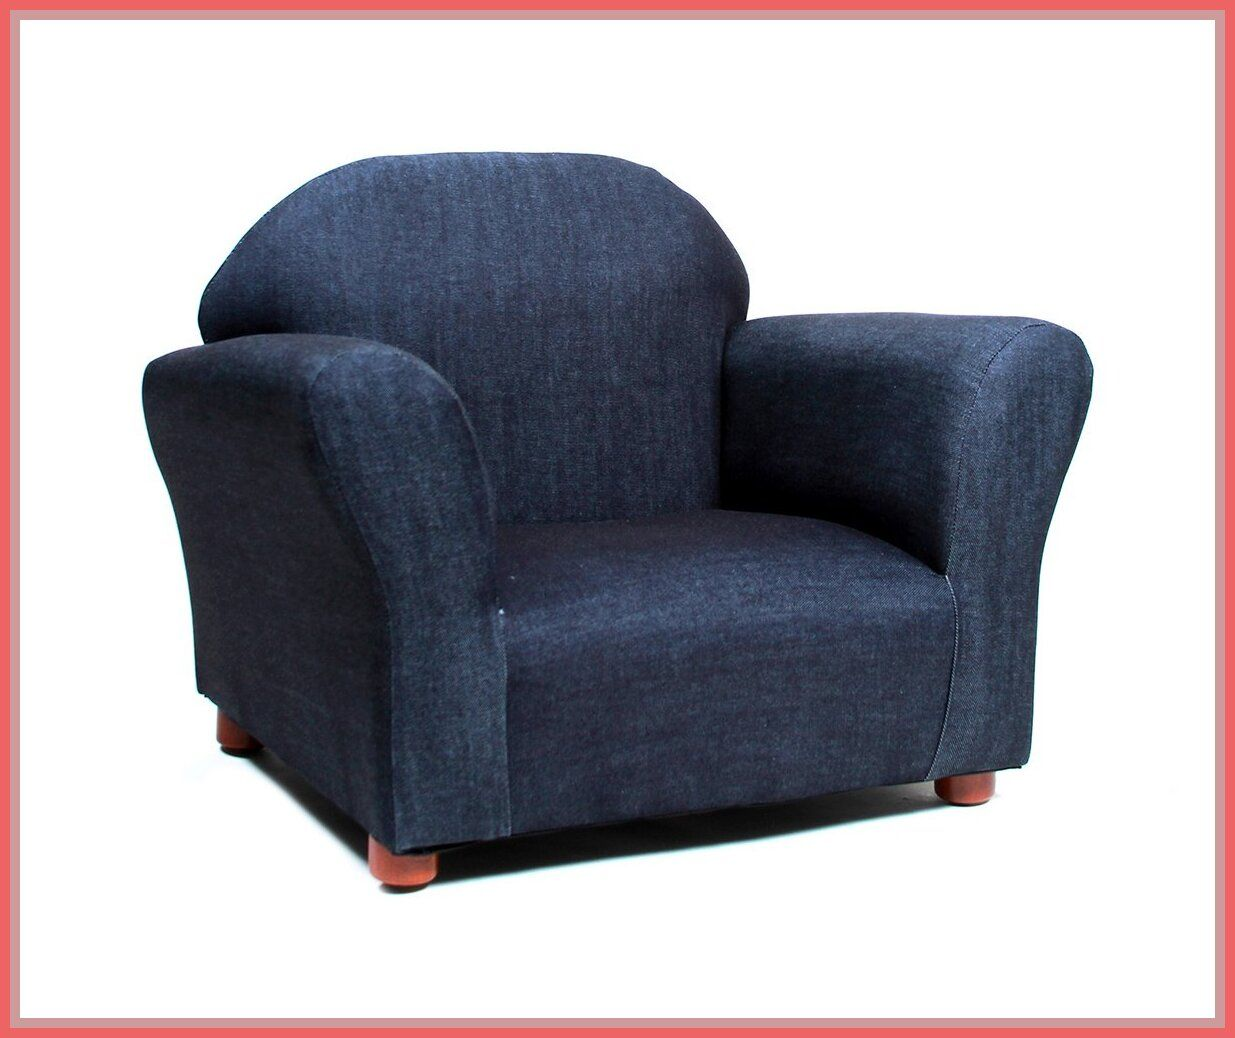 sofa bed chair amazon #sofa #bed #chair #amazon For more ideas, you just have to Click The Link! ENJOY!!